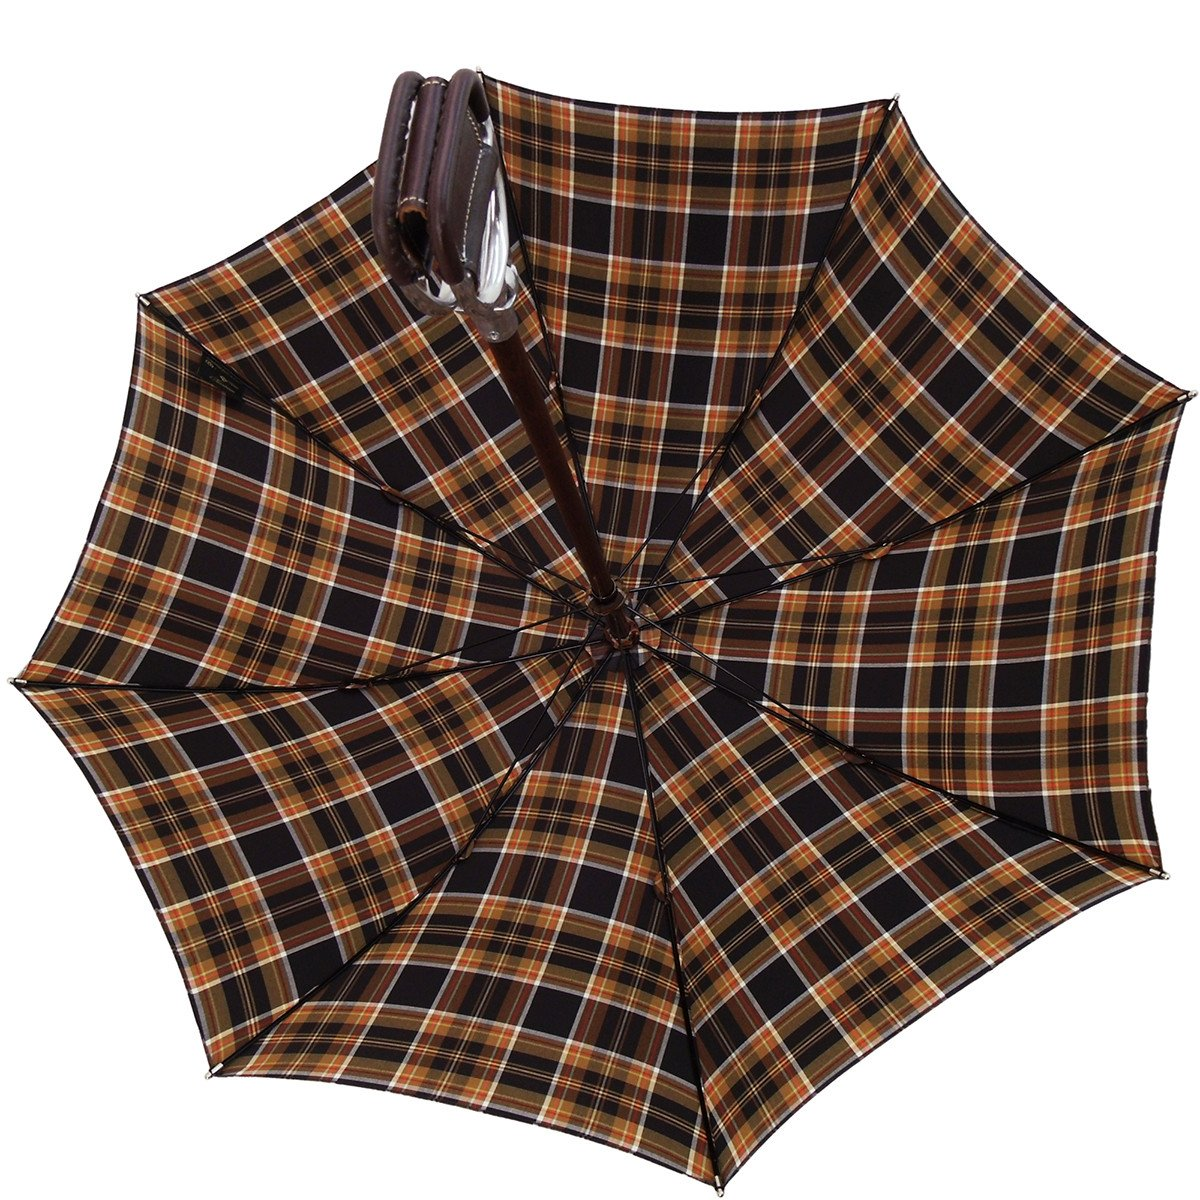 Handcrafted Leather Seat Umbrella- Brown Tartan